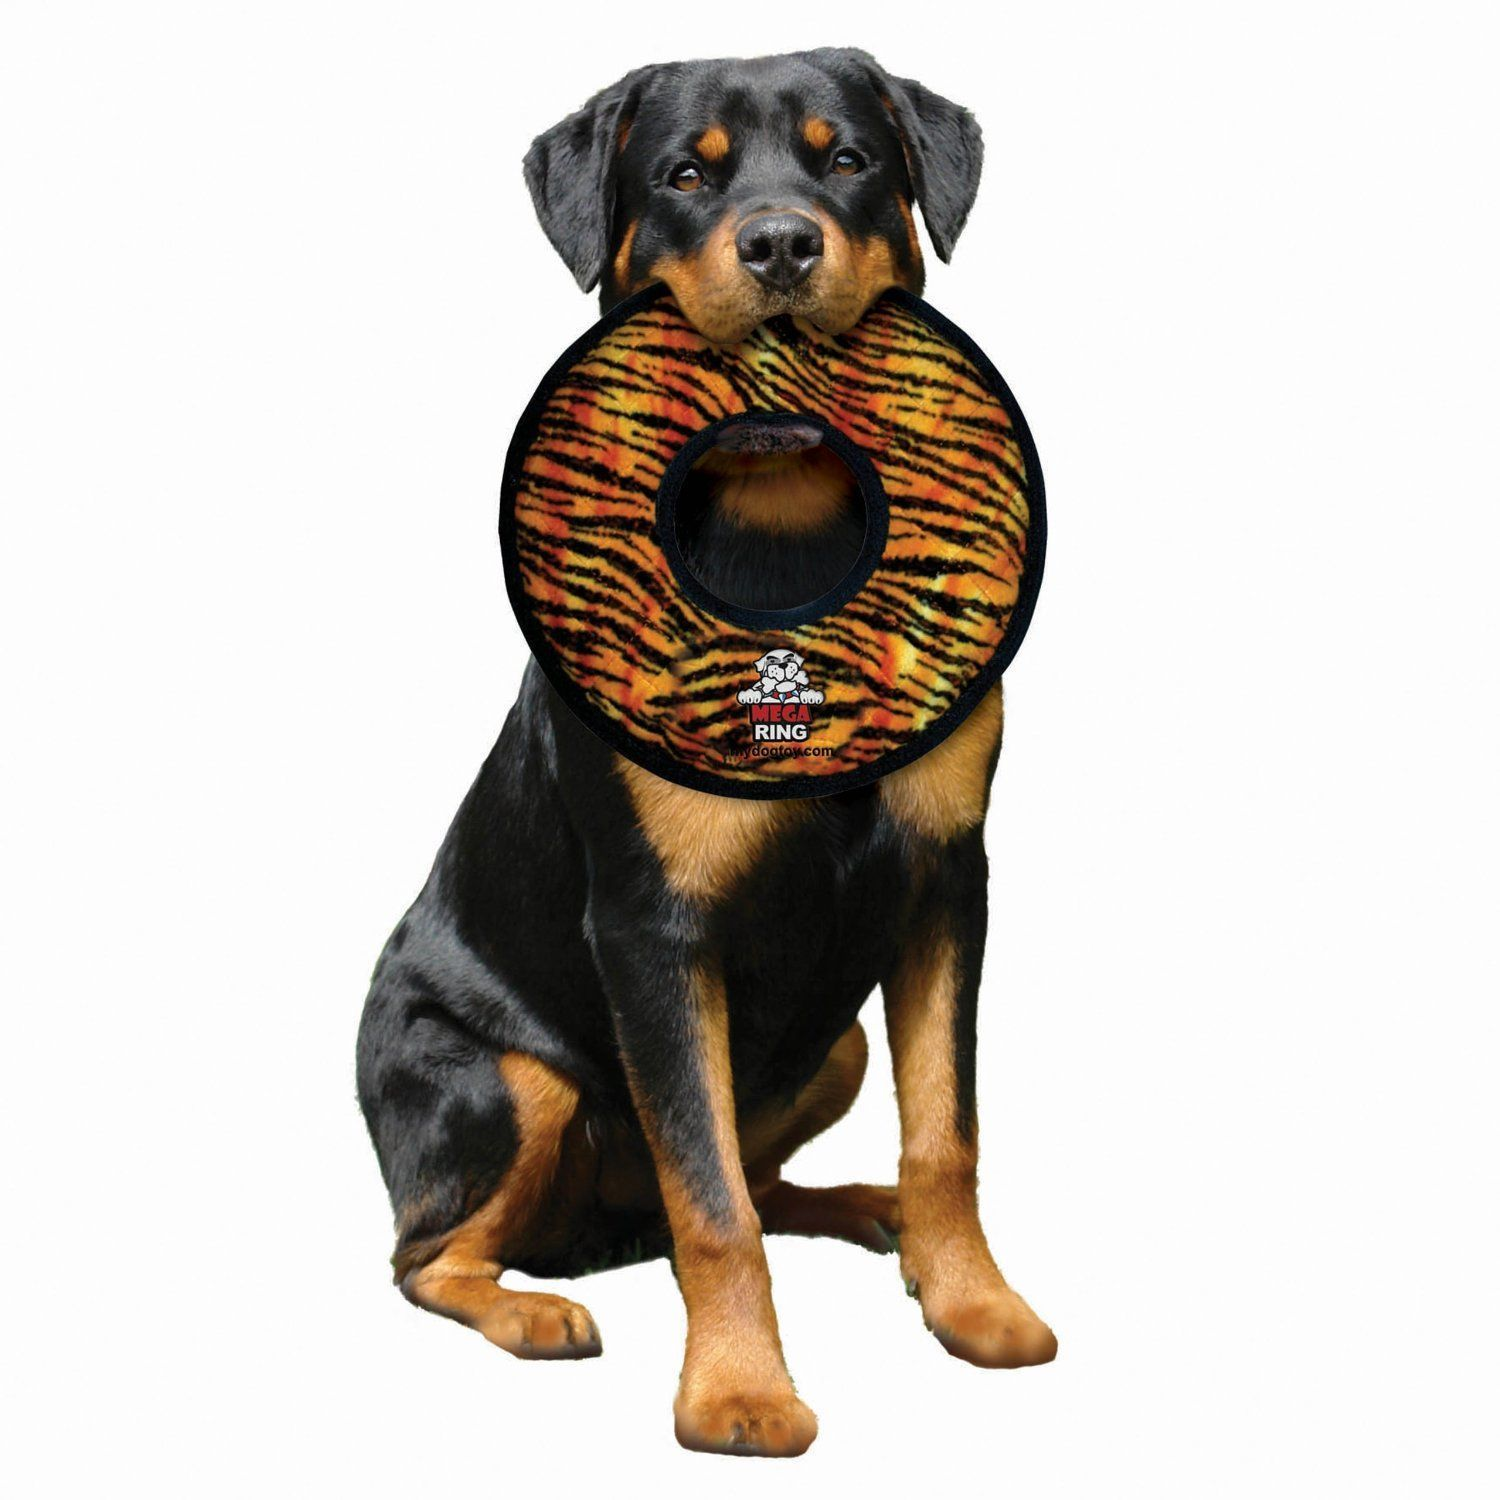 Indestructible Dog Toys A List Of The Best Rubber Dog Toys